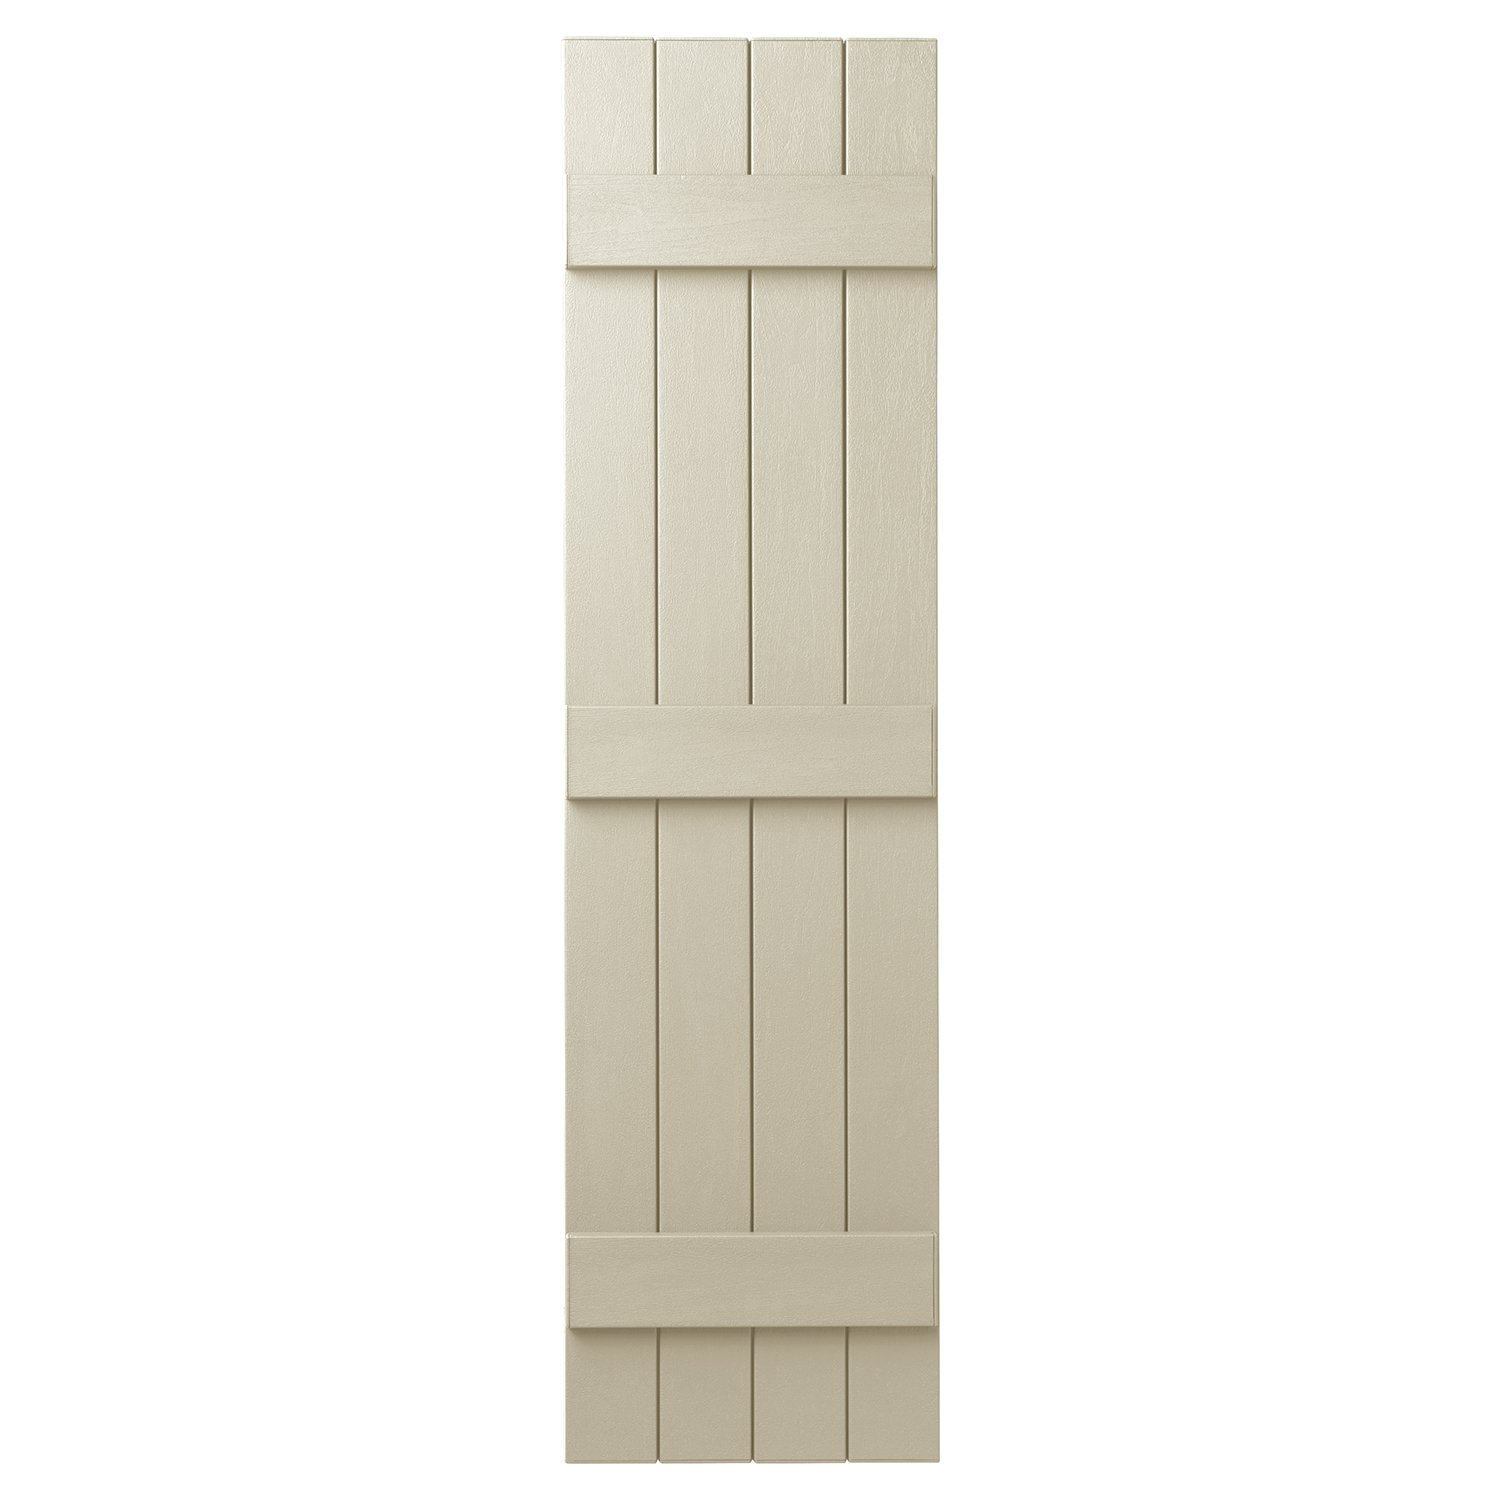 Ply Gem Shutters and Accents VIN4C1563 CRM 4 Closed Board and Batten Shutter, Sand Dollar